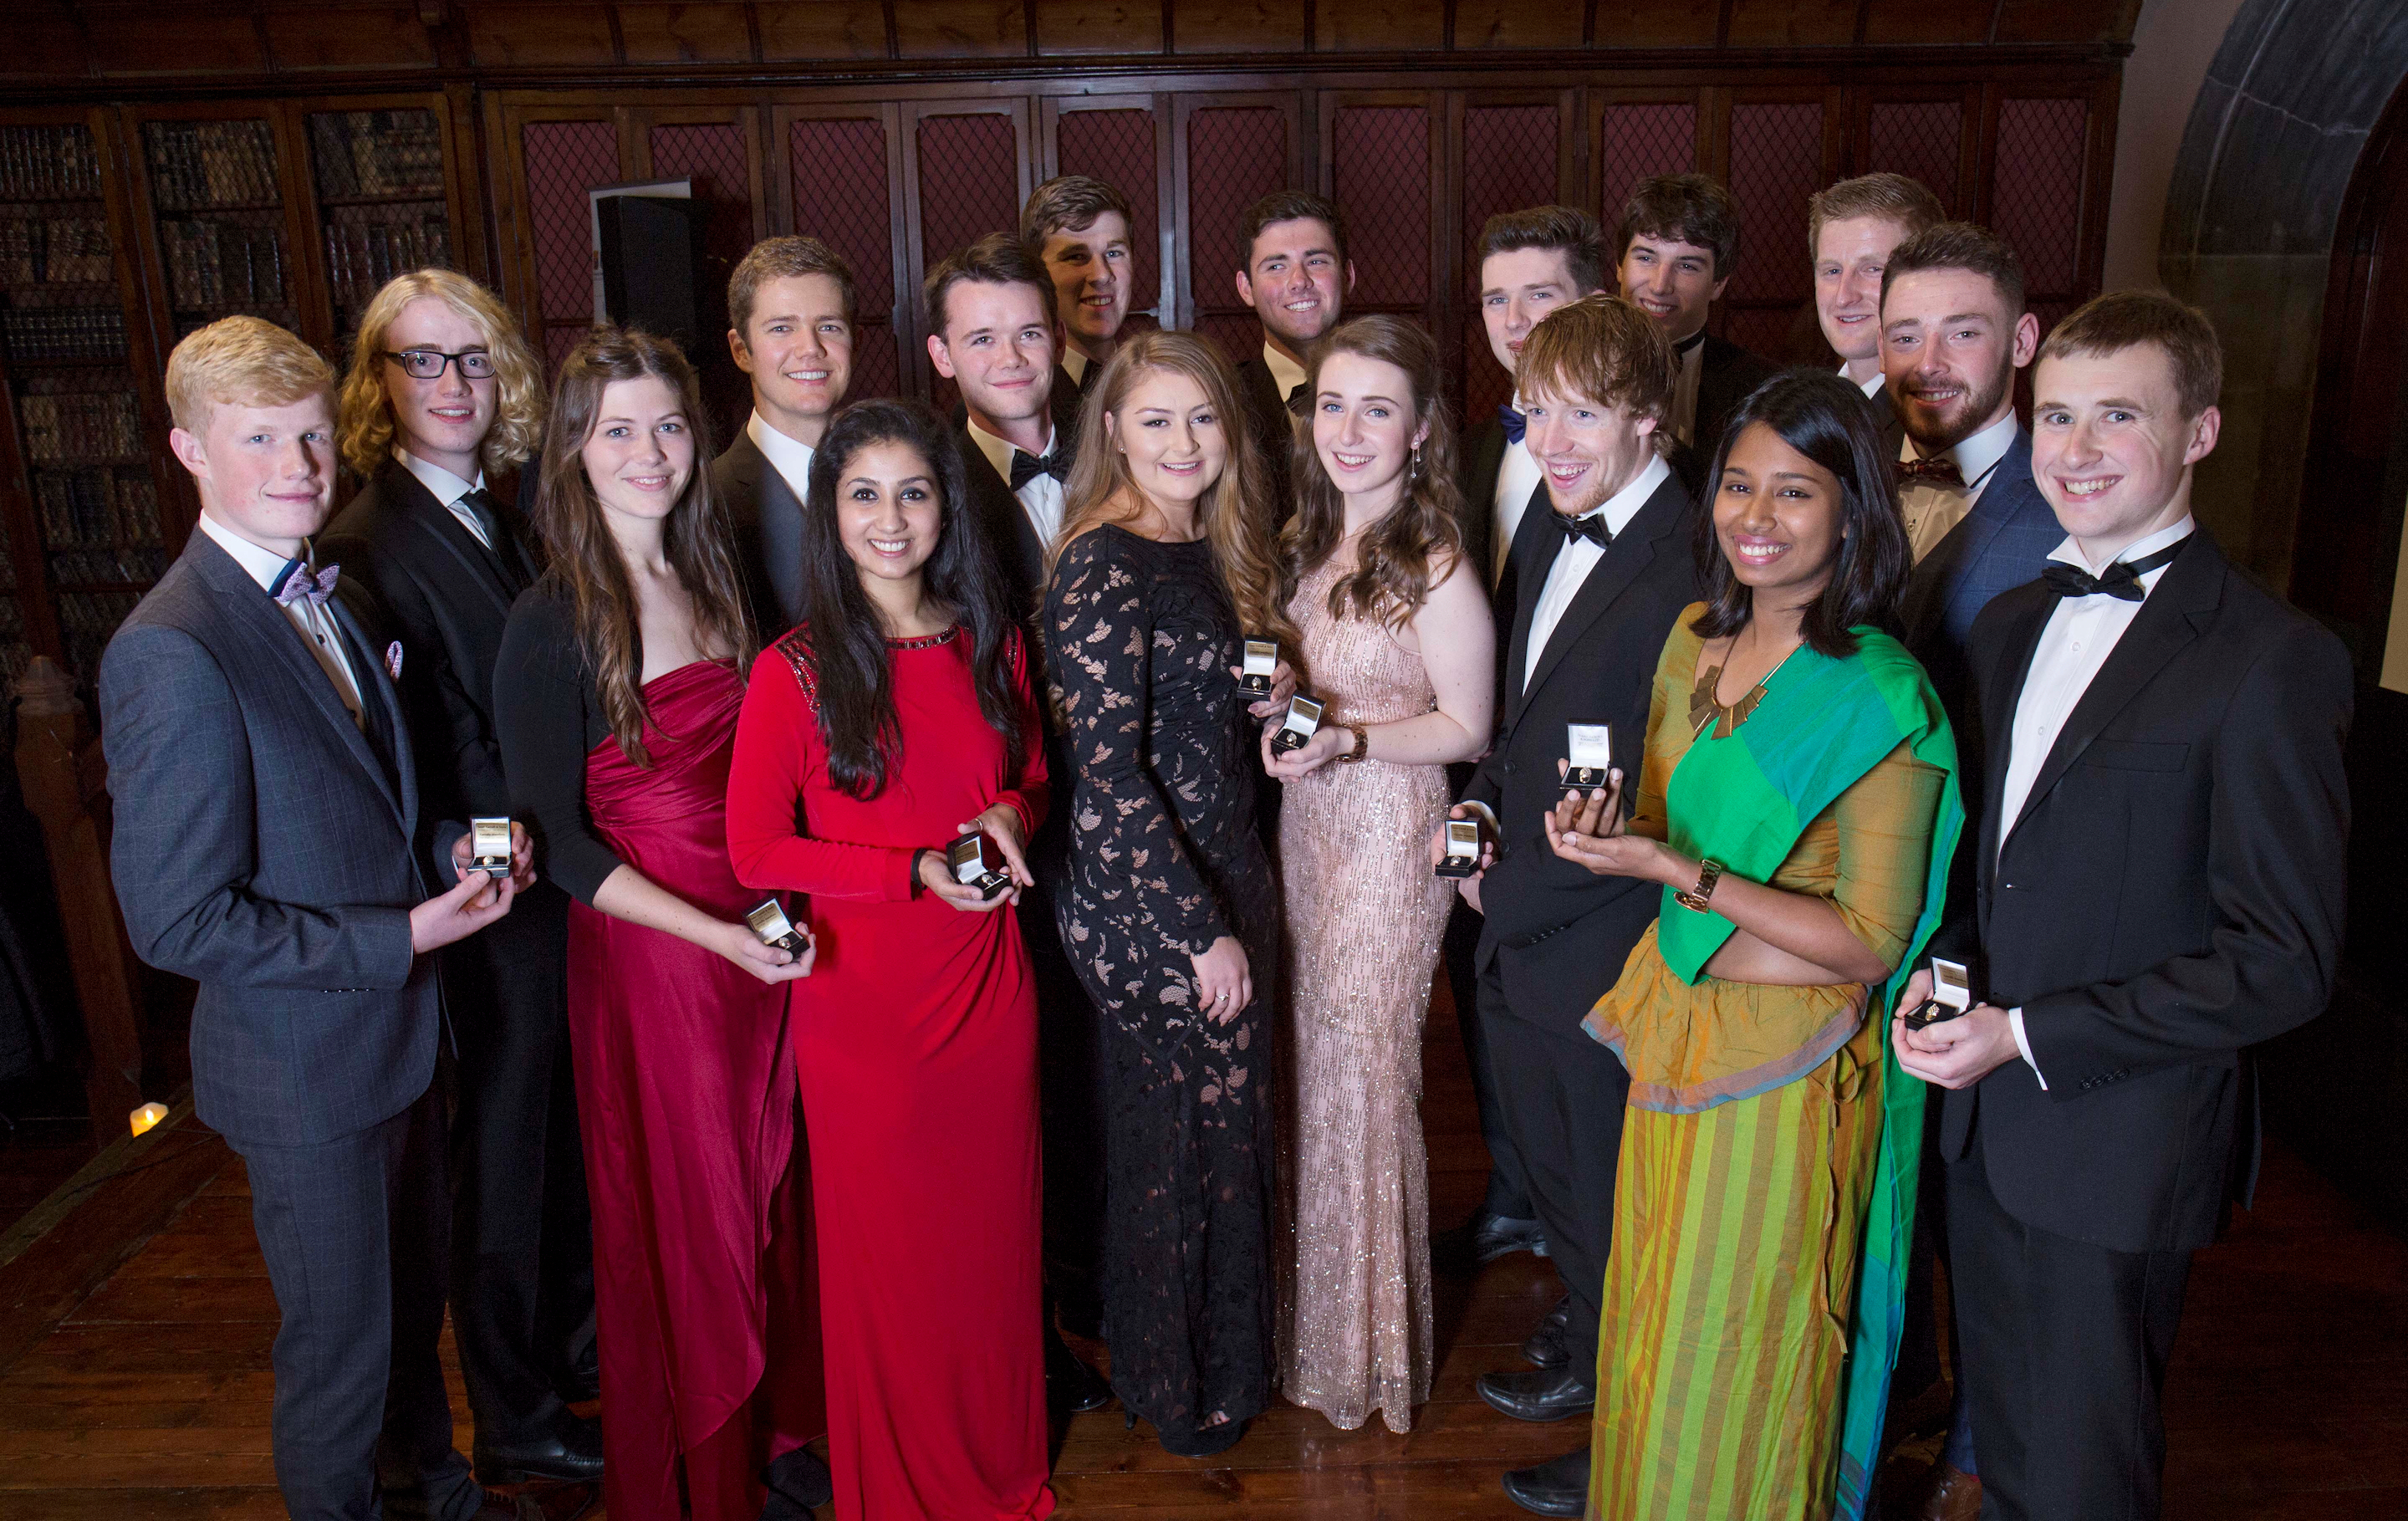 UCC Quercus Talented Students' Award Gala – December 1st